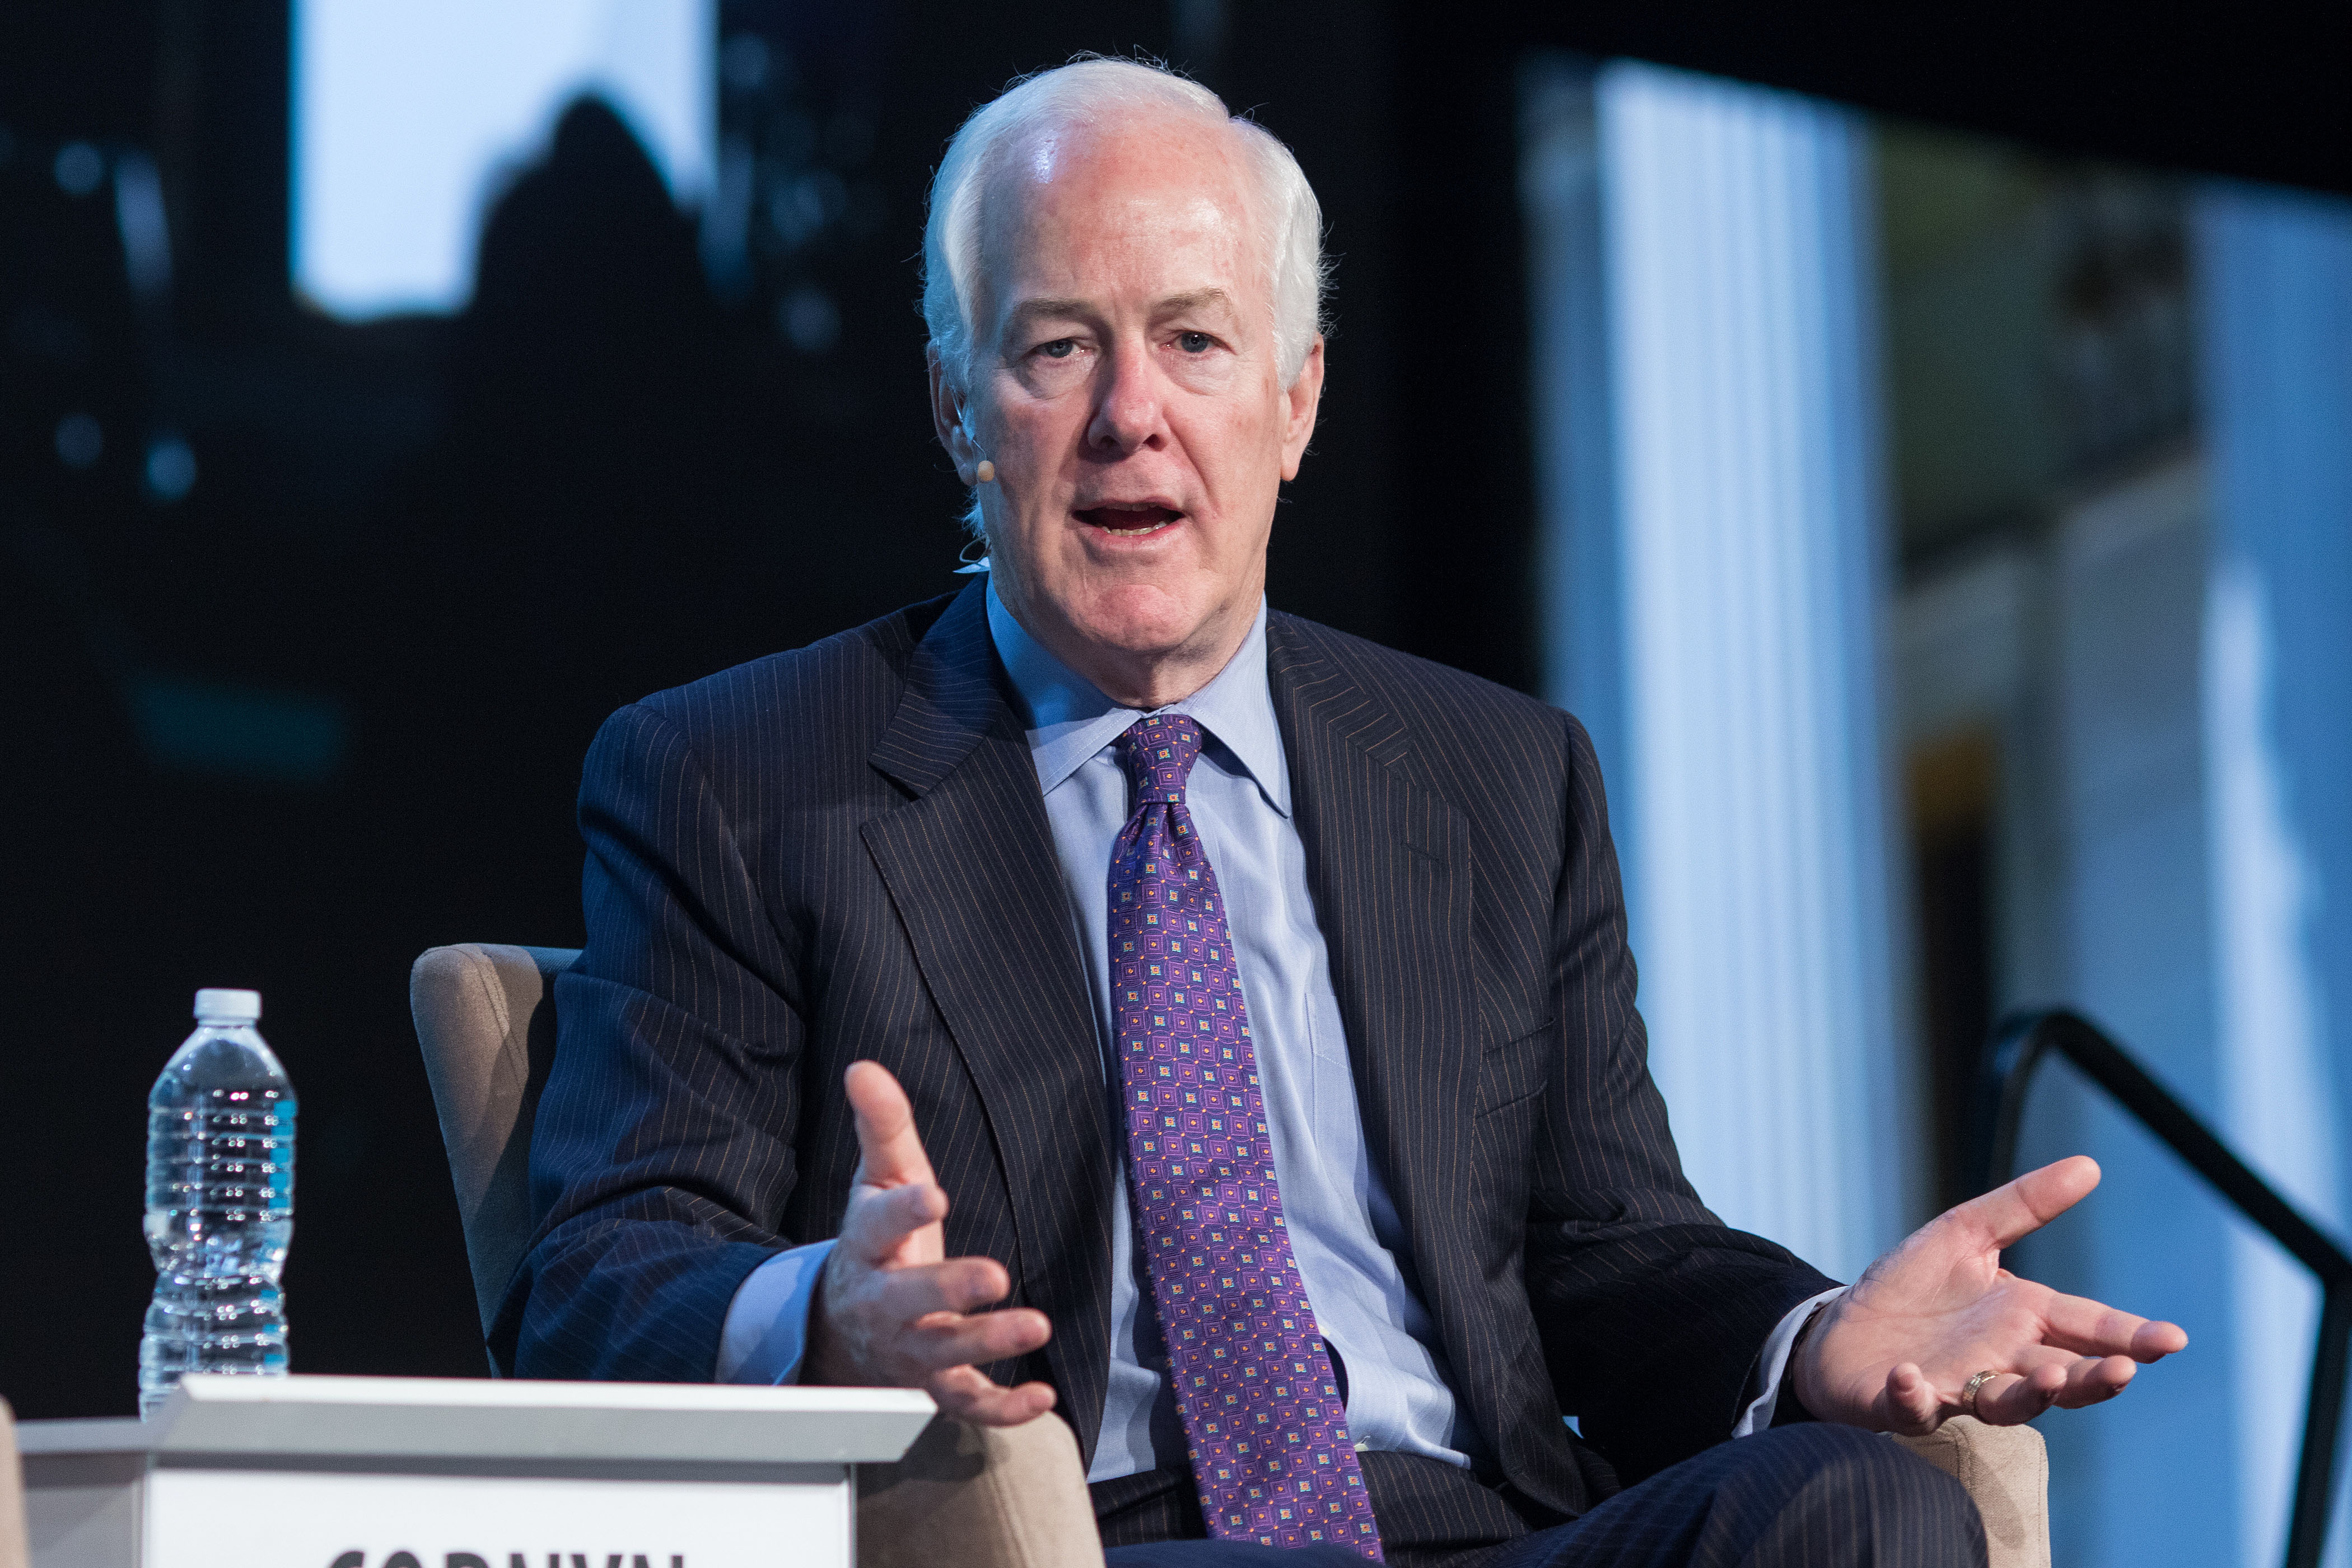 Sen. John Cornyn, a Republican from Texas, speaks during the 2017 CERAWeek by IHS Markit conference in Houston, Texas on March 10, 2017.